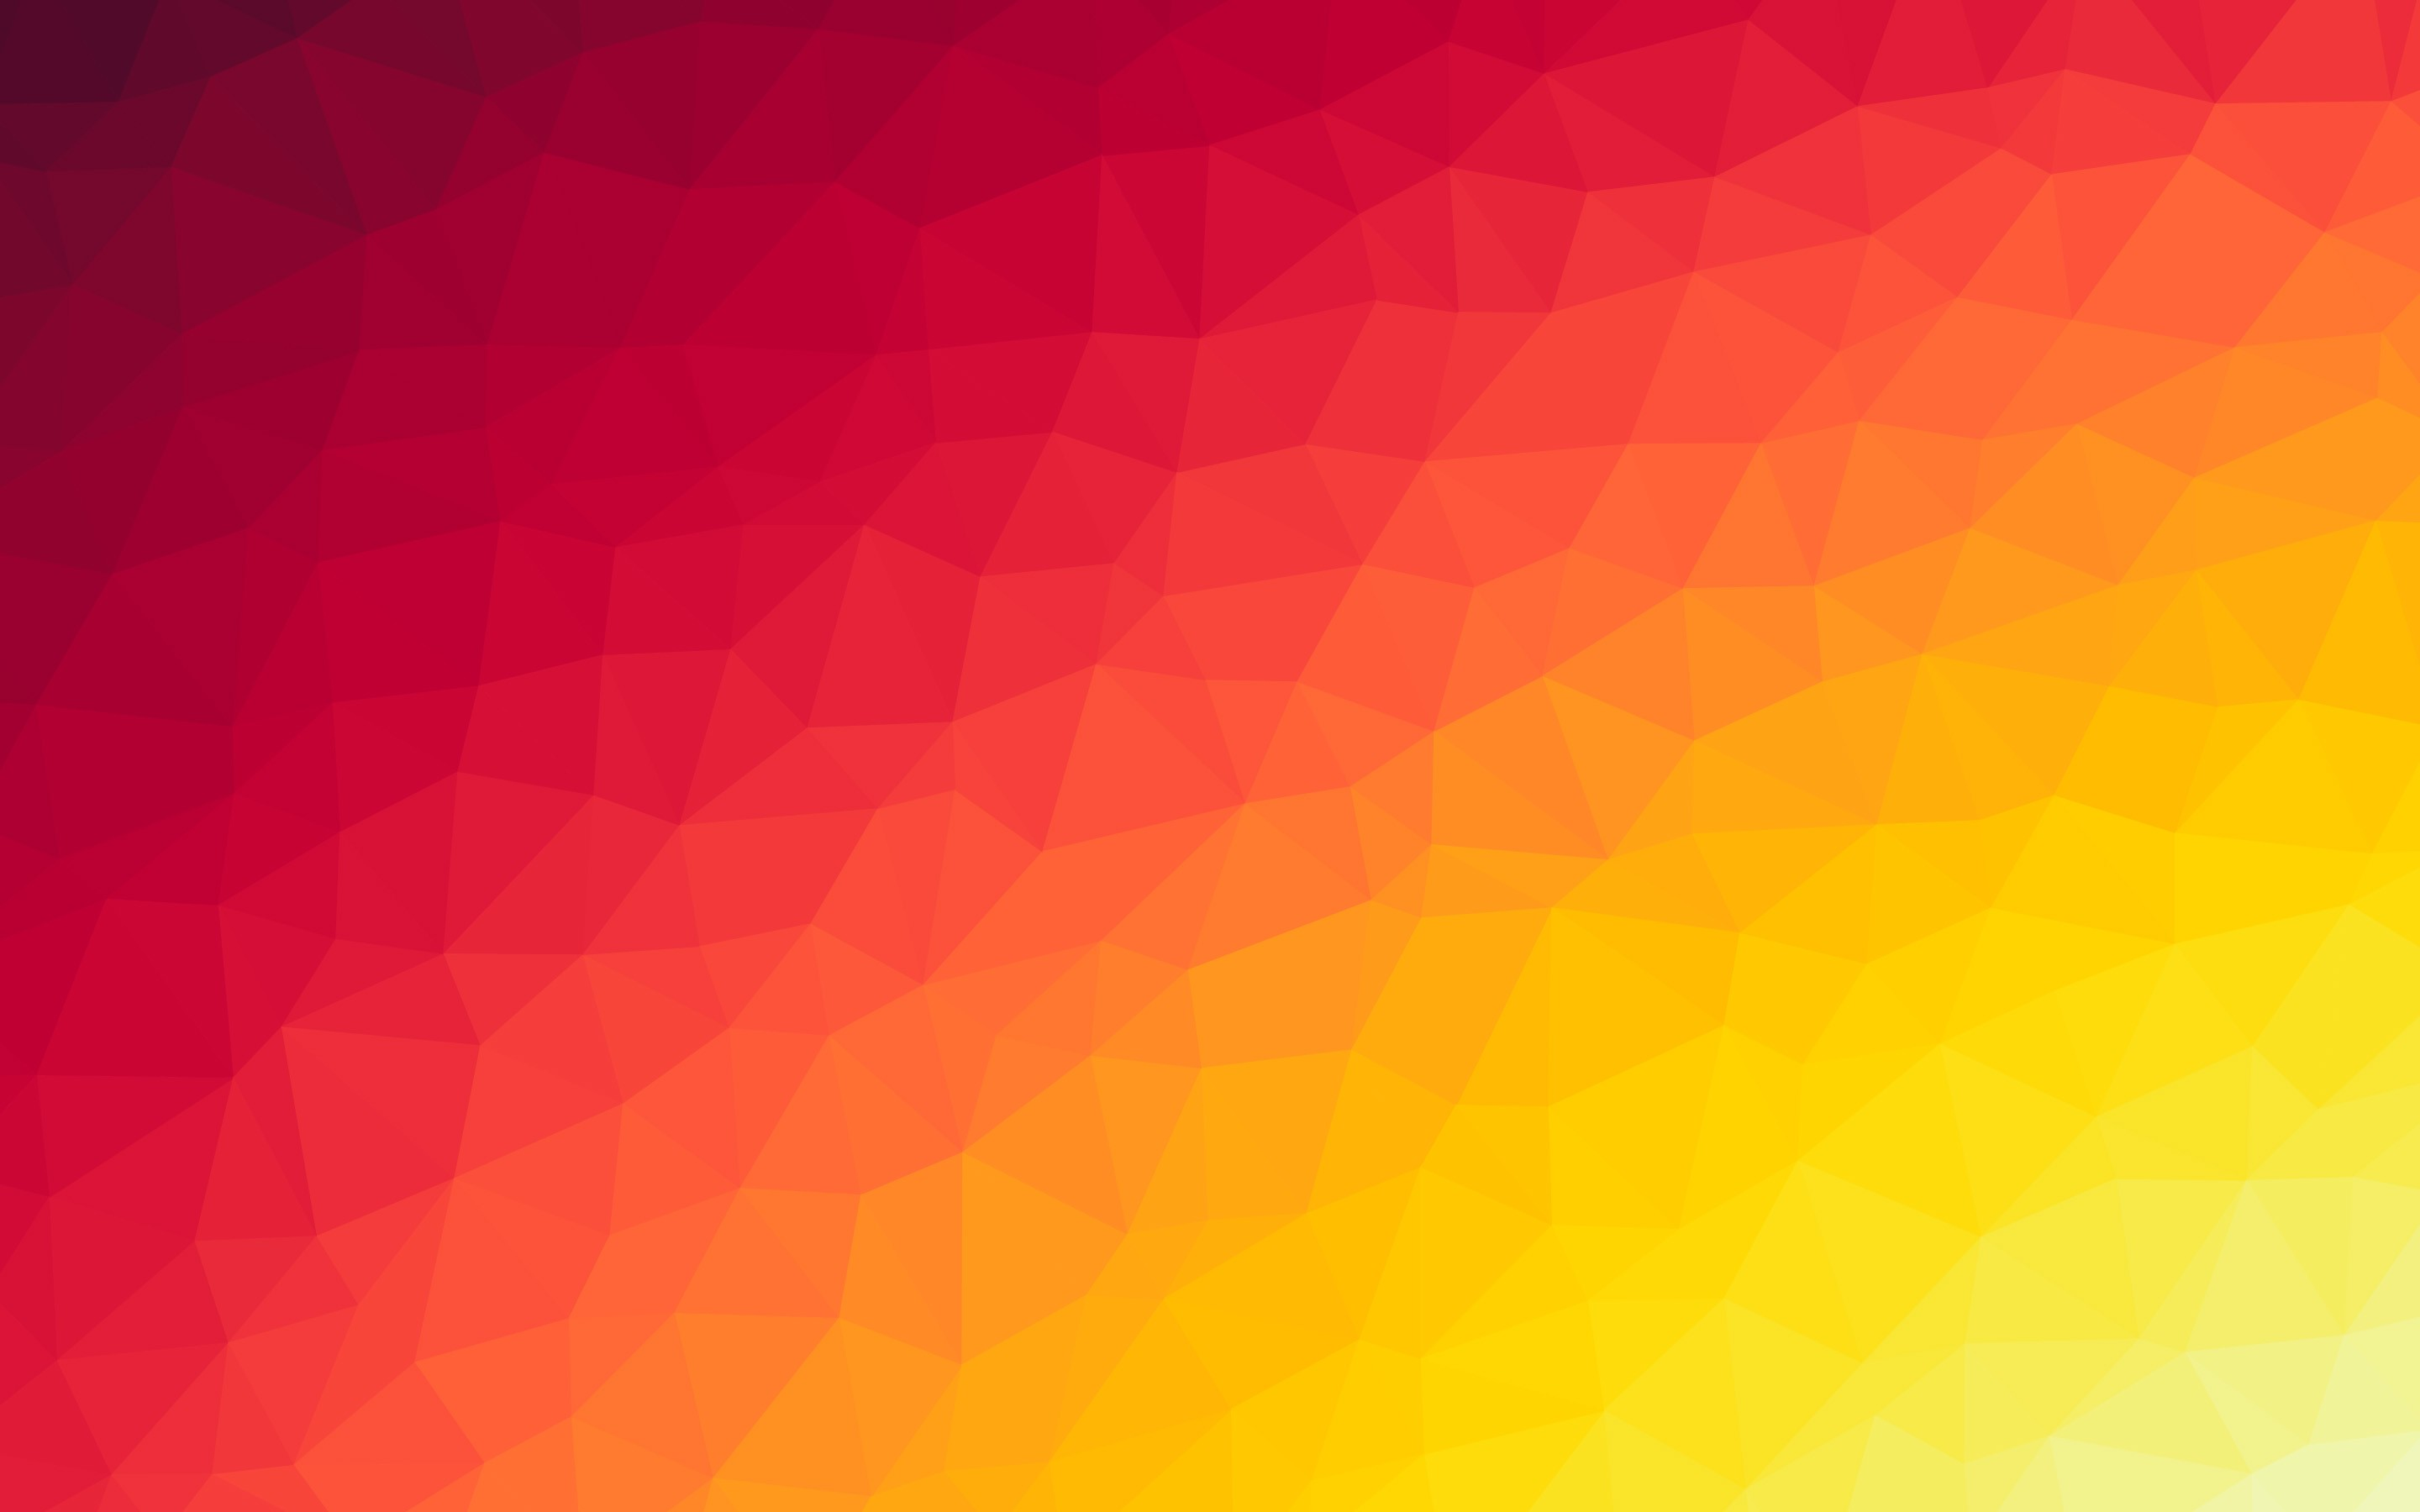 HTML Background Color HTML Color Codes 2880x1800